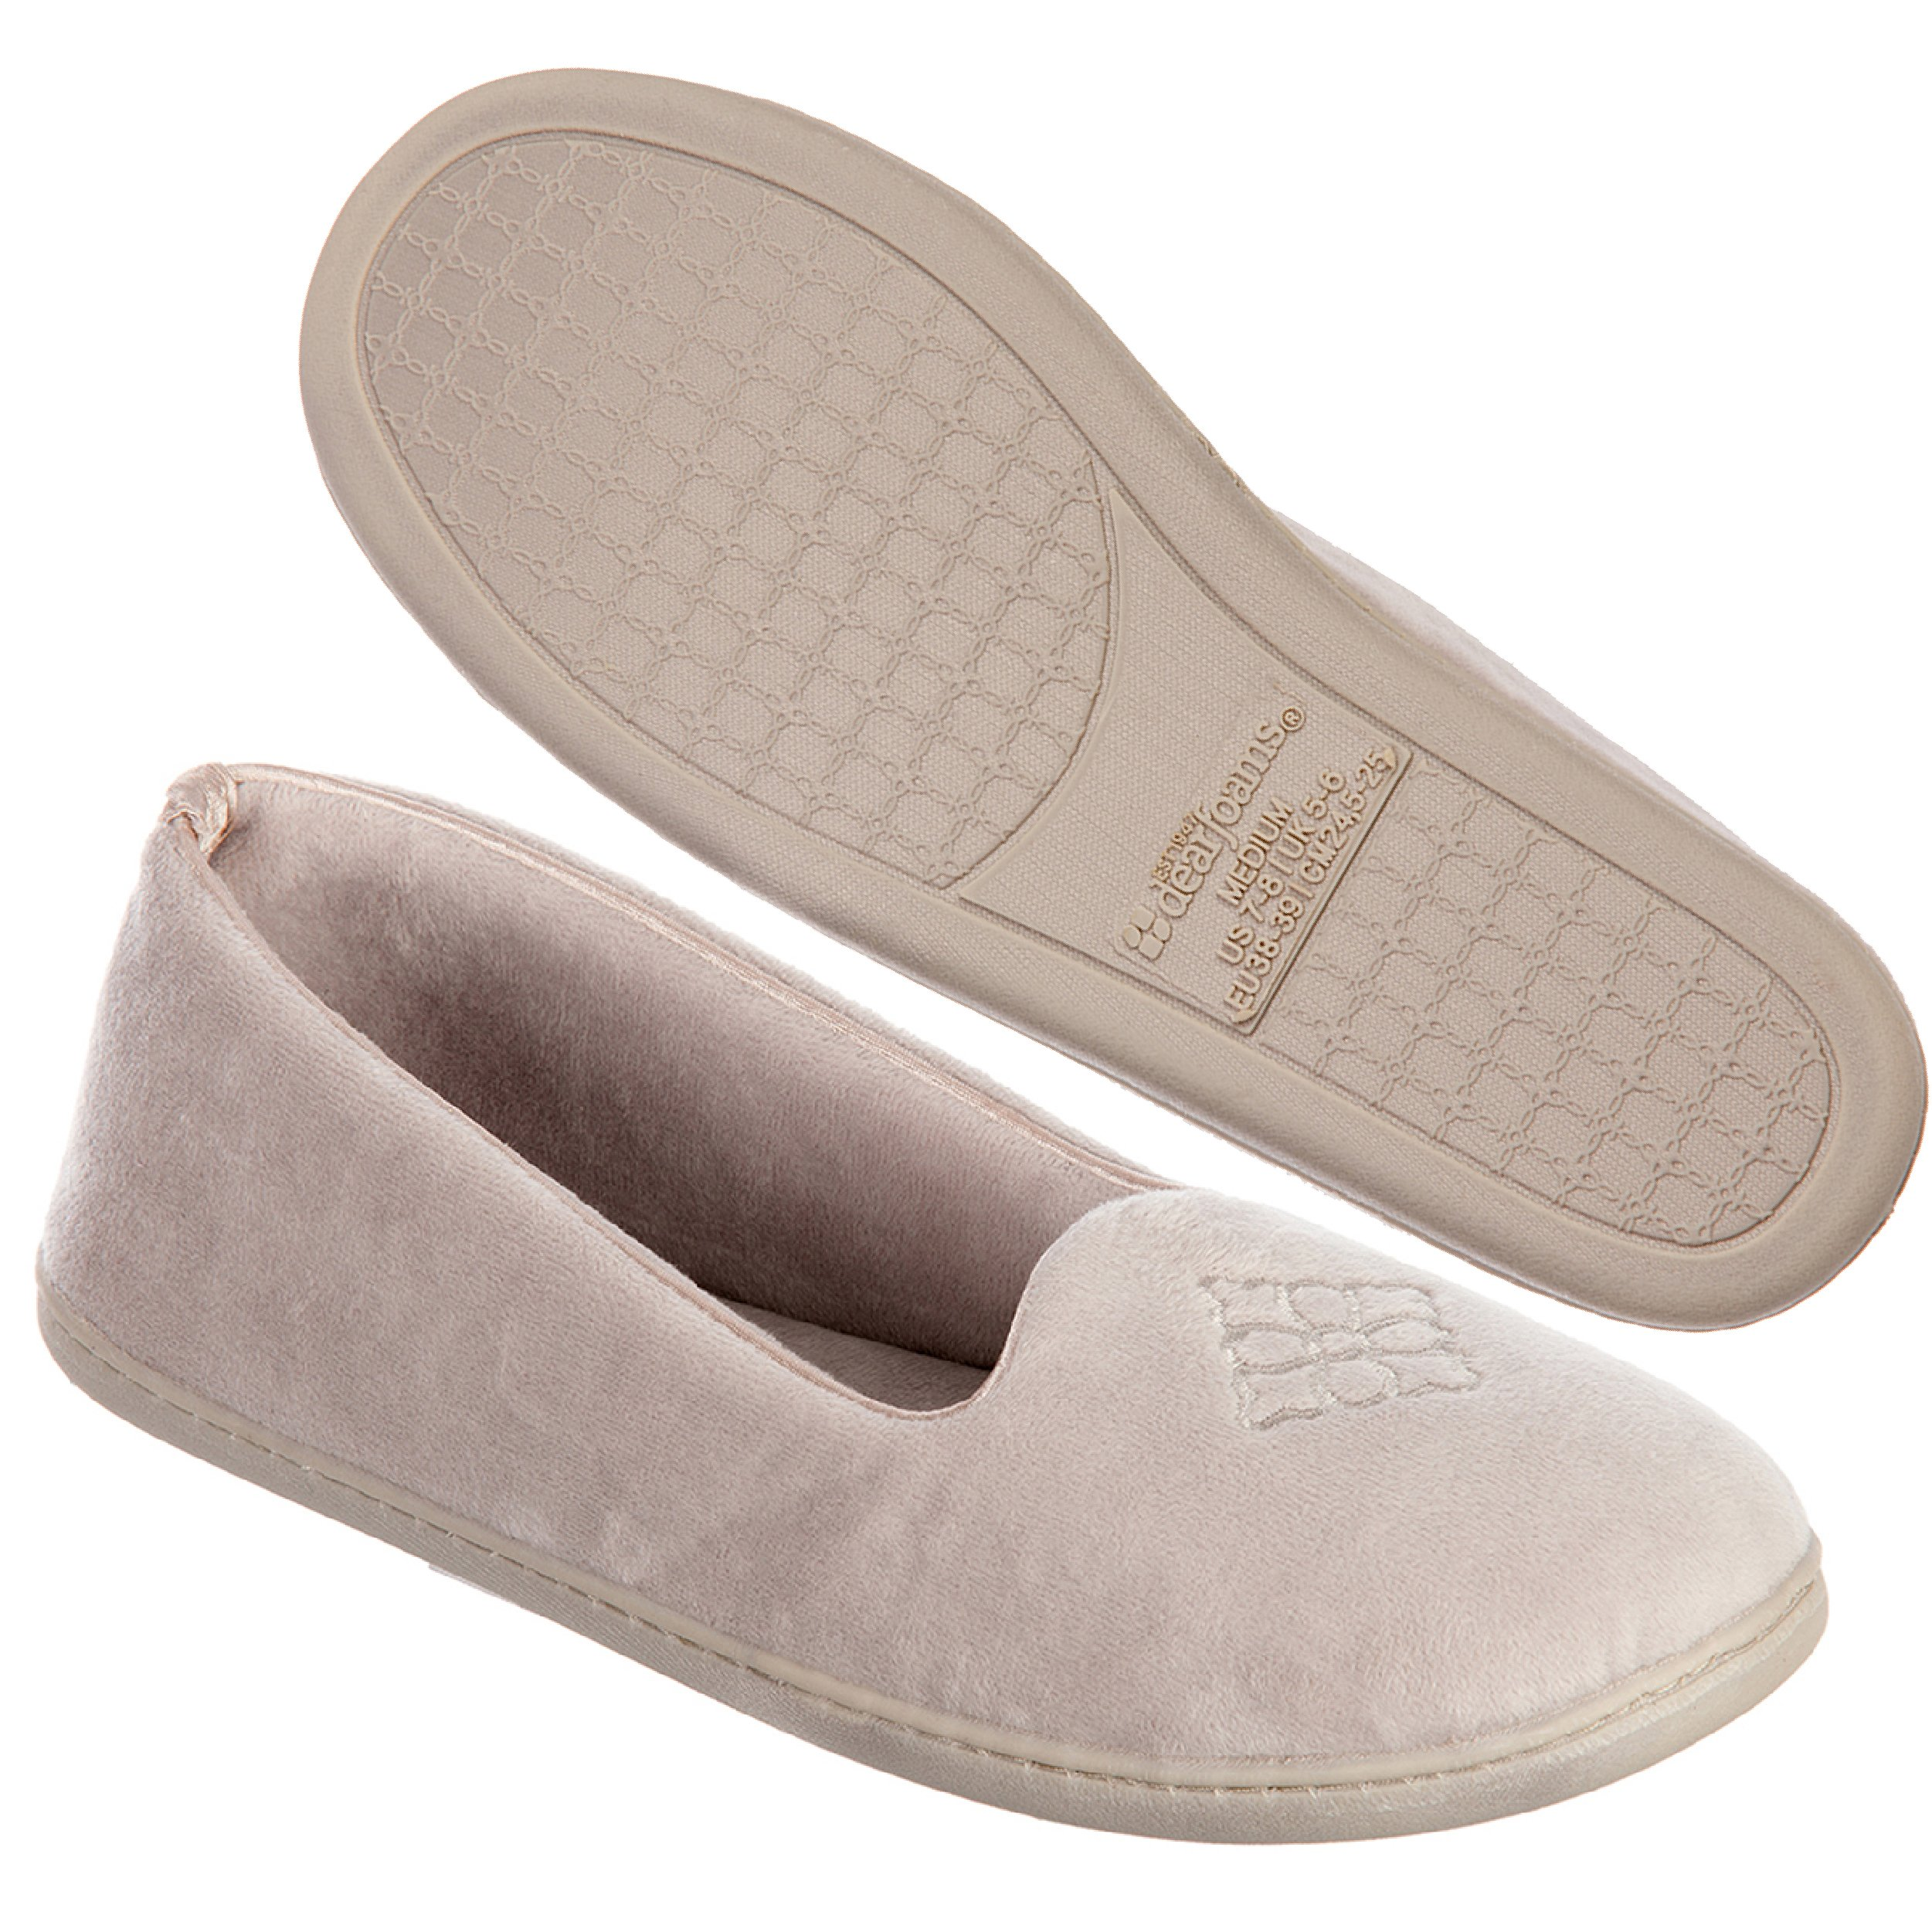 Dearfoams Women's Velour Closed Back Slipper, Pewter, Large/9-10 M US